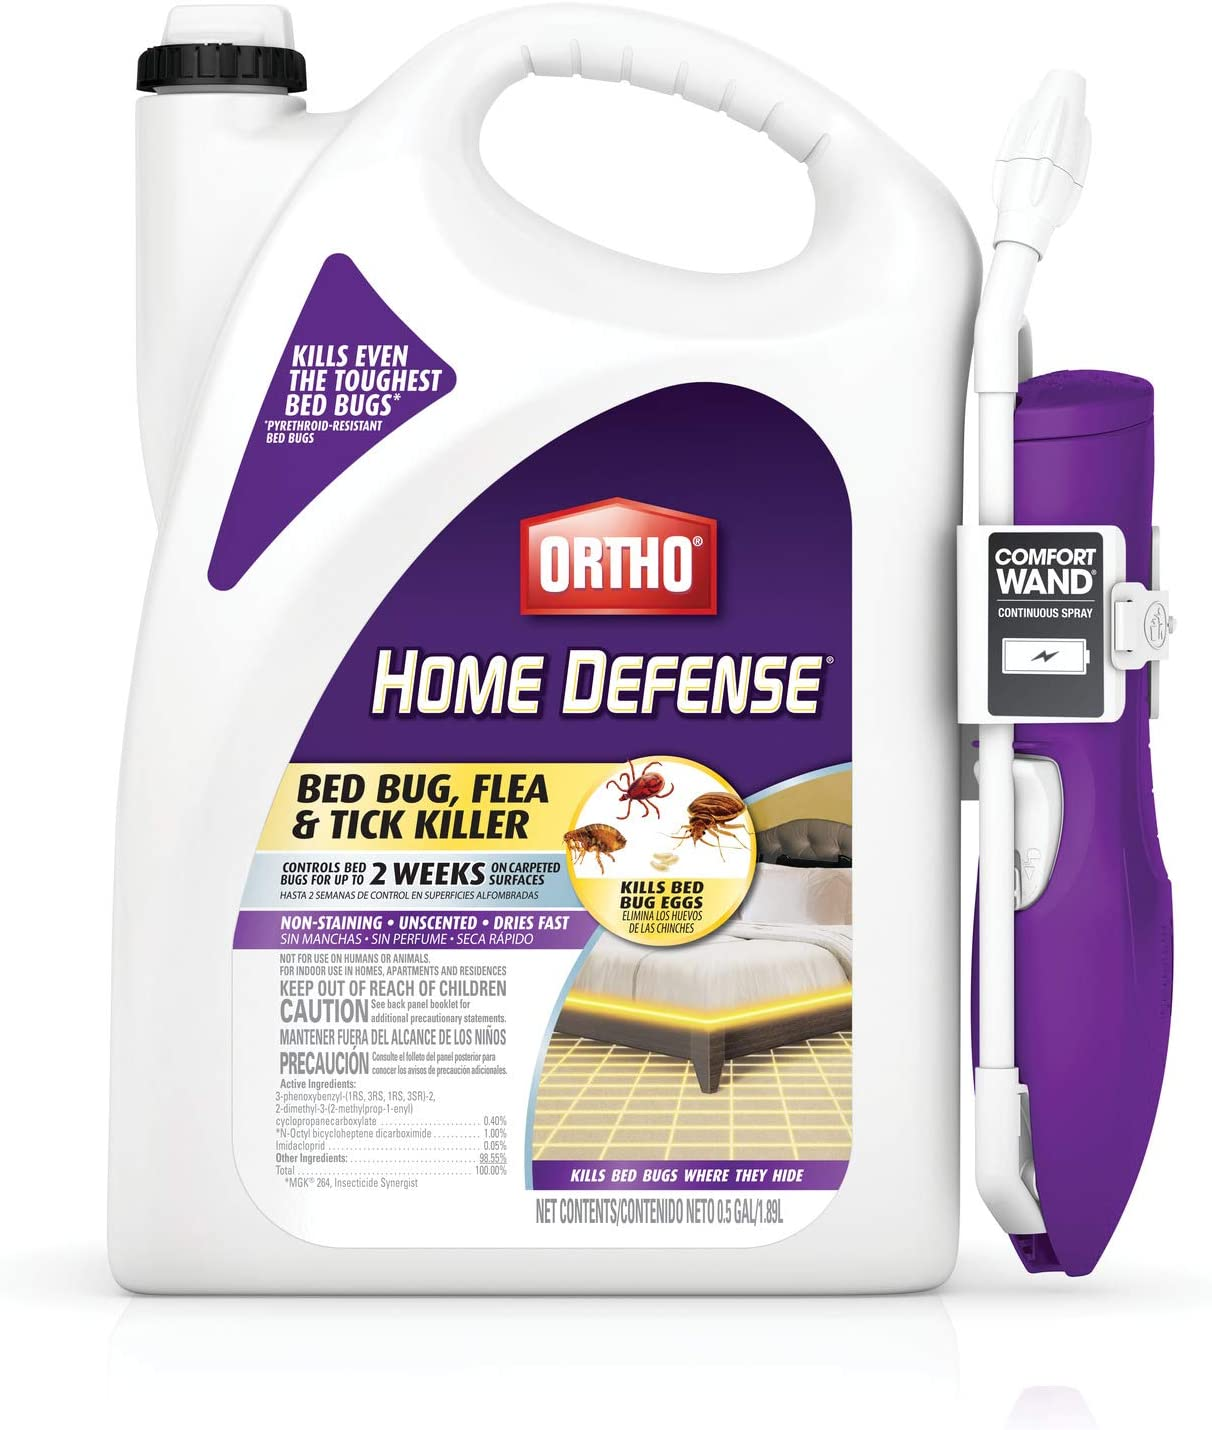 Ortho 0202510 Home Defense Max Bed Bug, Flea and Tick Killer Featured Image